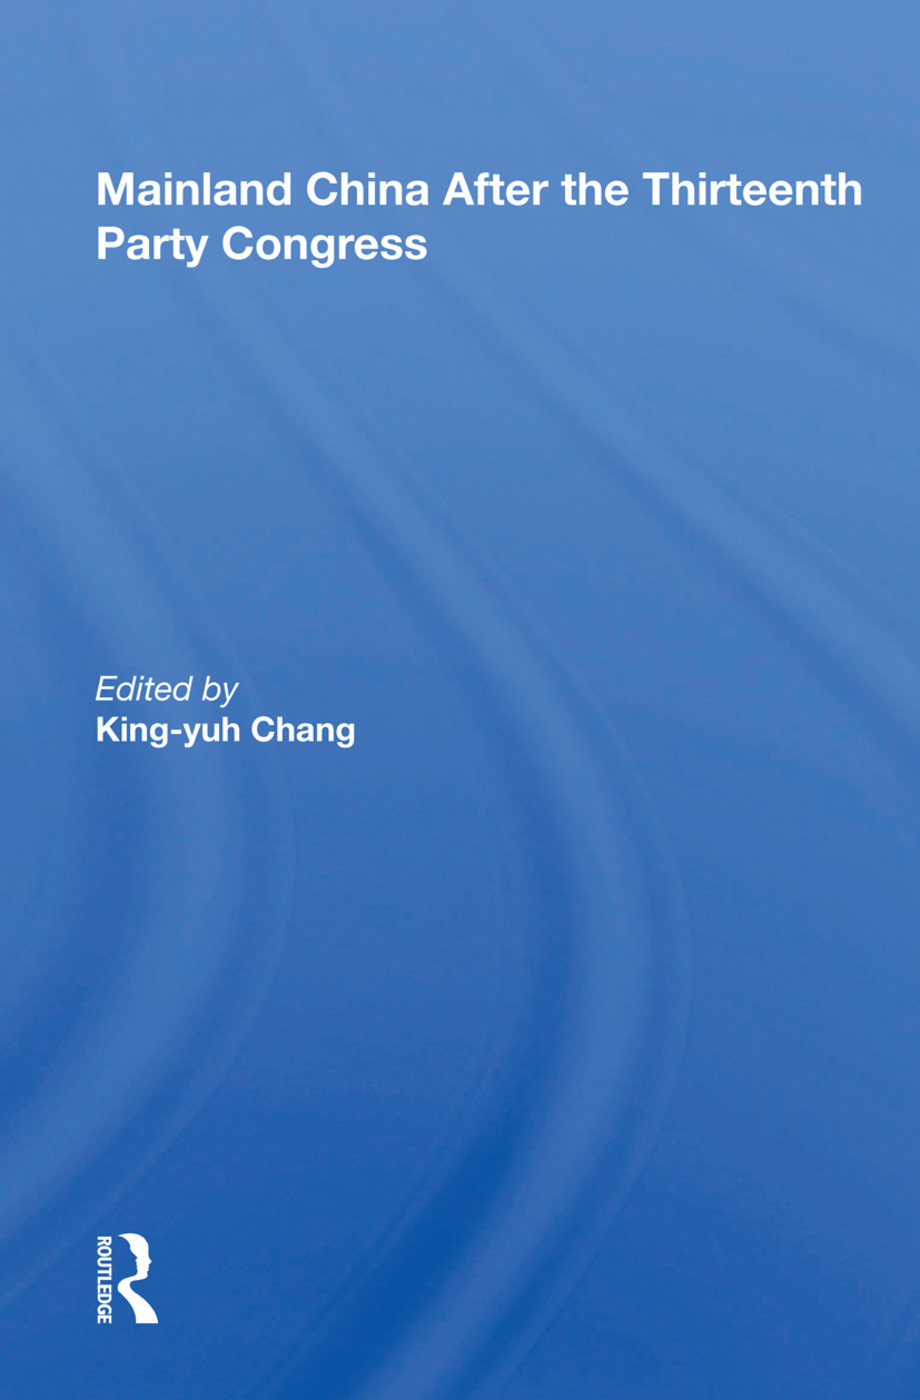 Mainland China After The Thirteenth Party Congress book cover